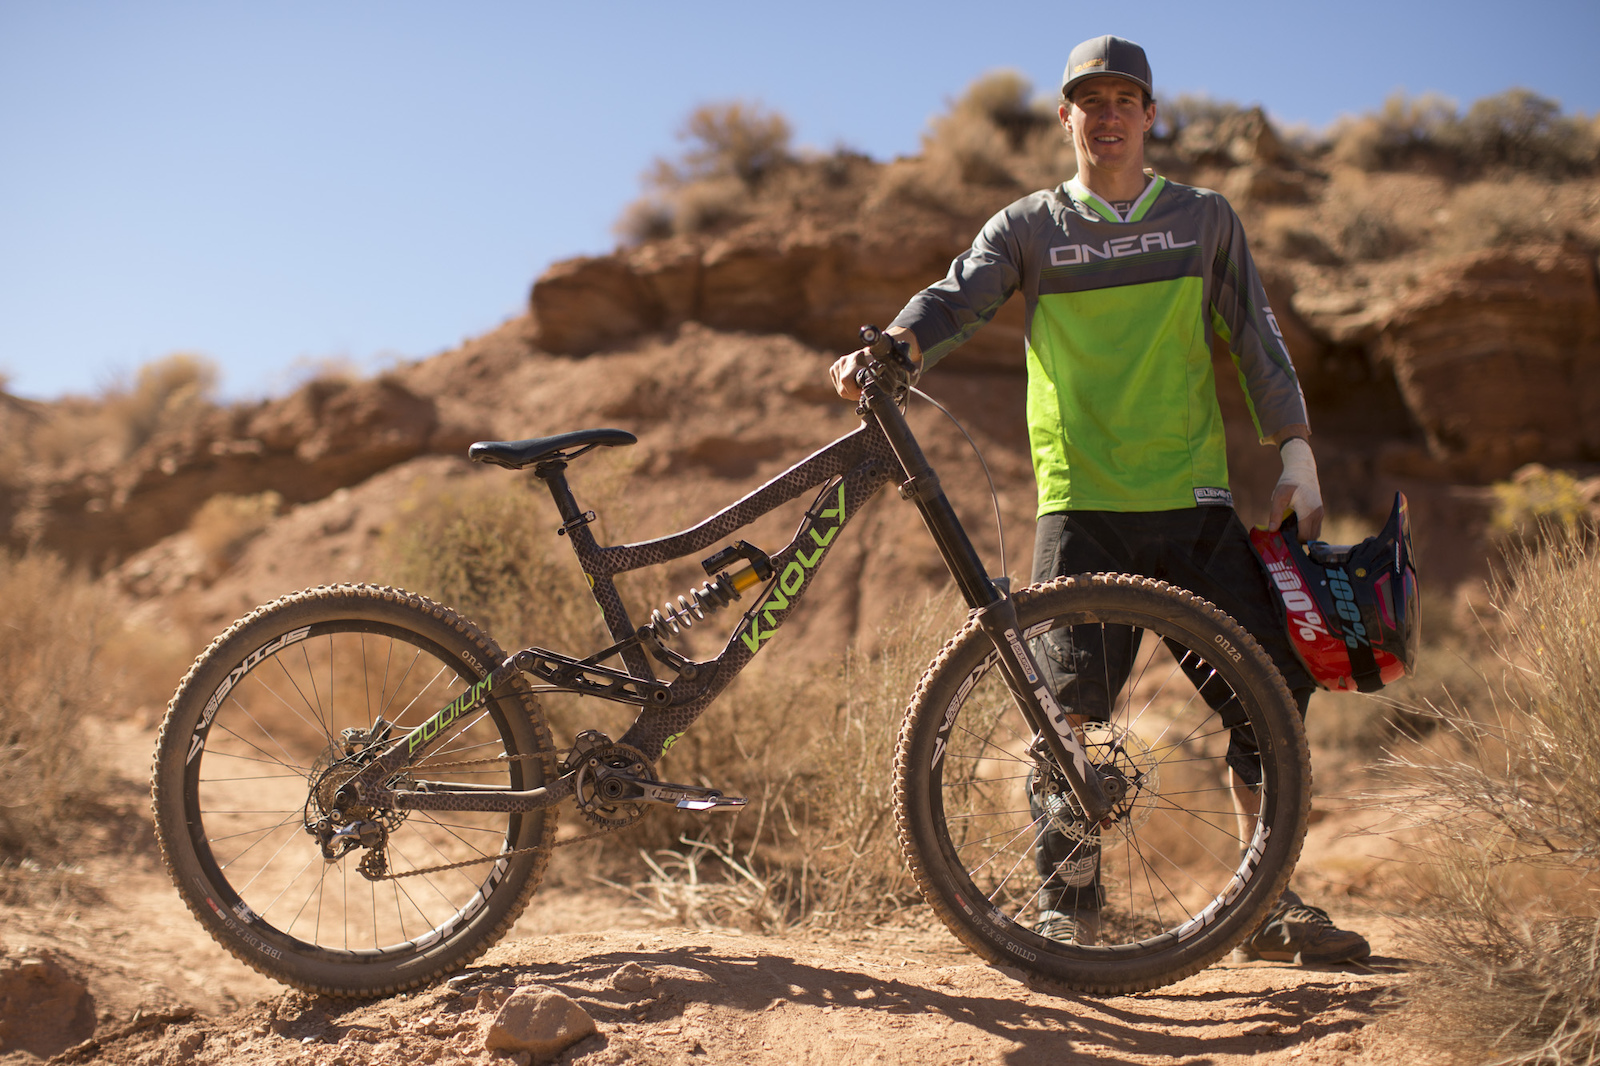 James Doerfling at RedBull Rampage 2015 Virgin Utah USA